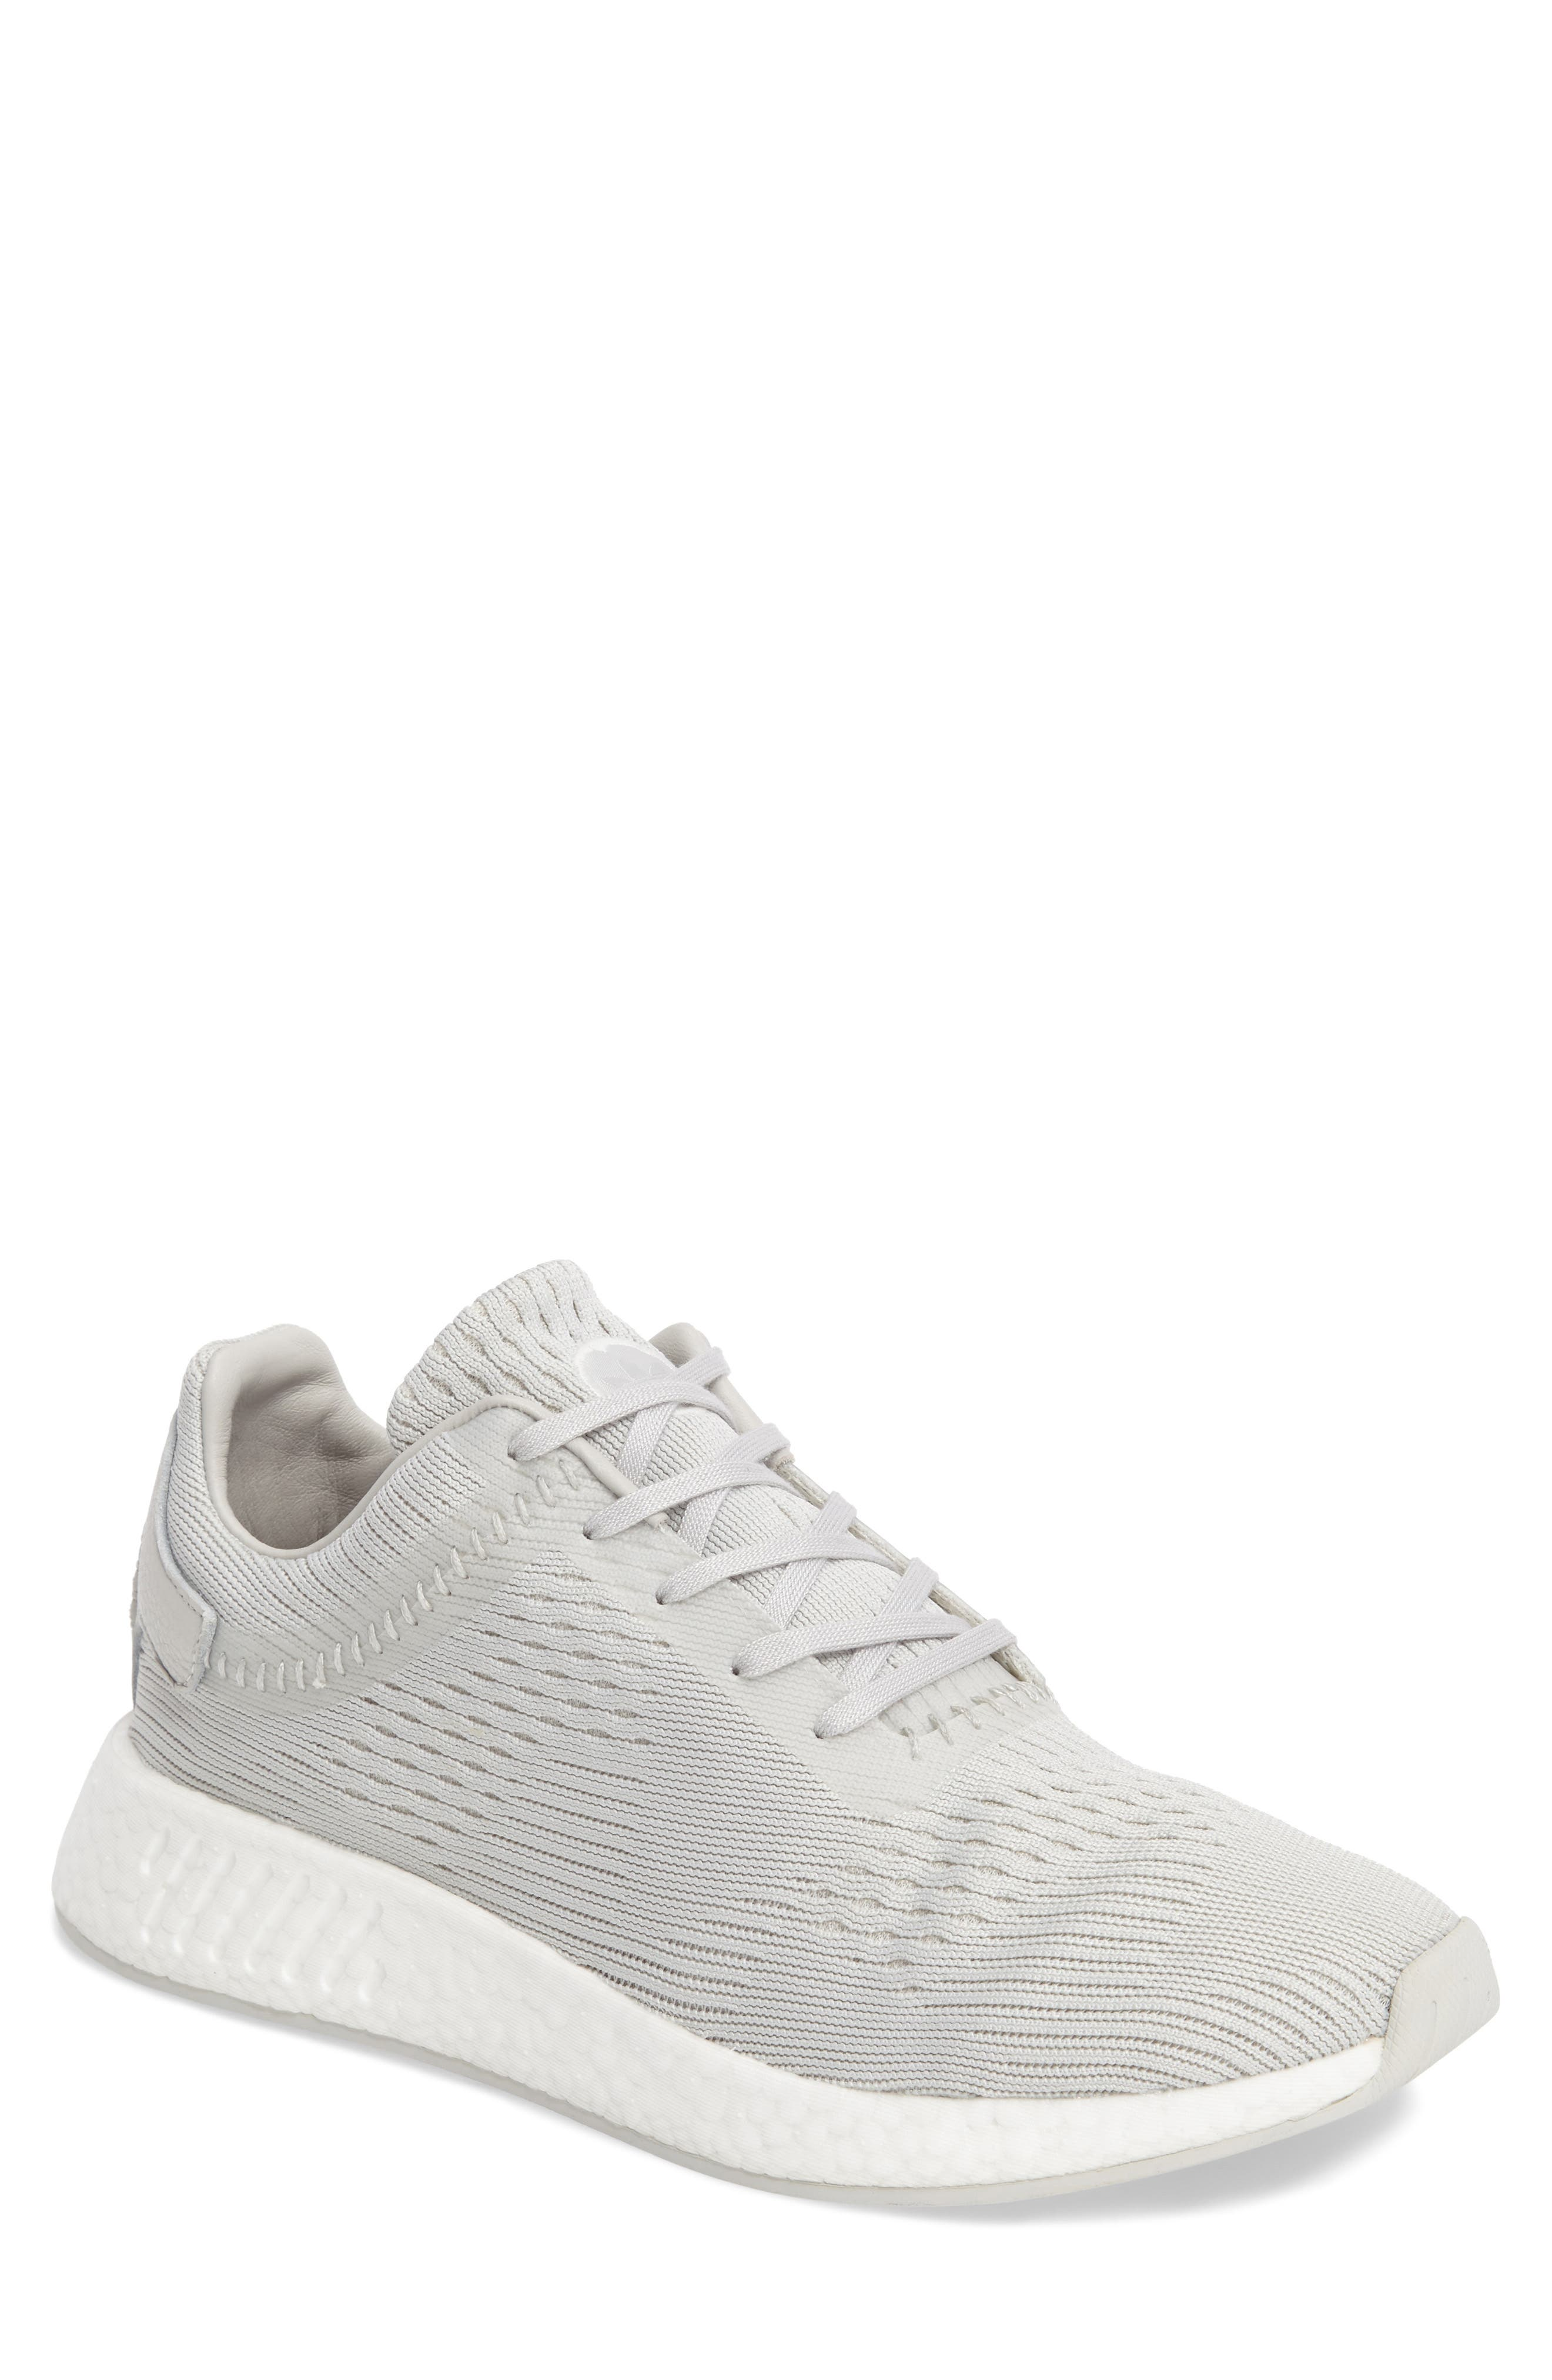 Nomad R2 Sneaker,                         Main,                         color, 025